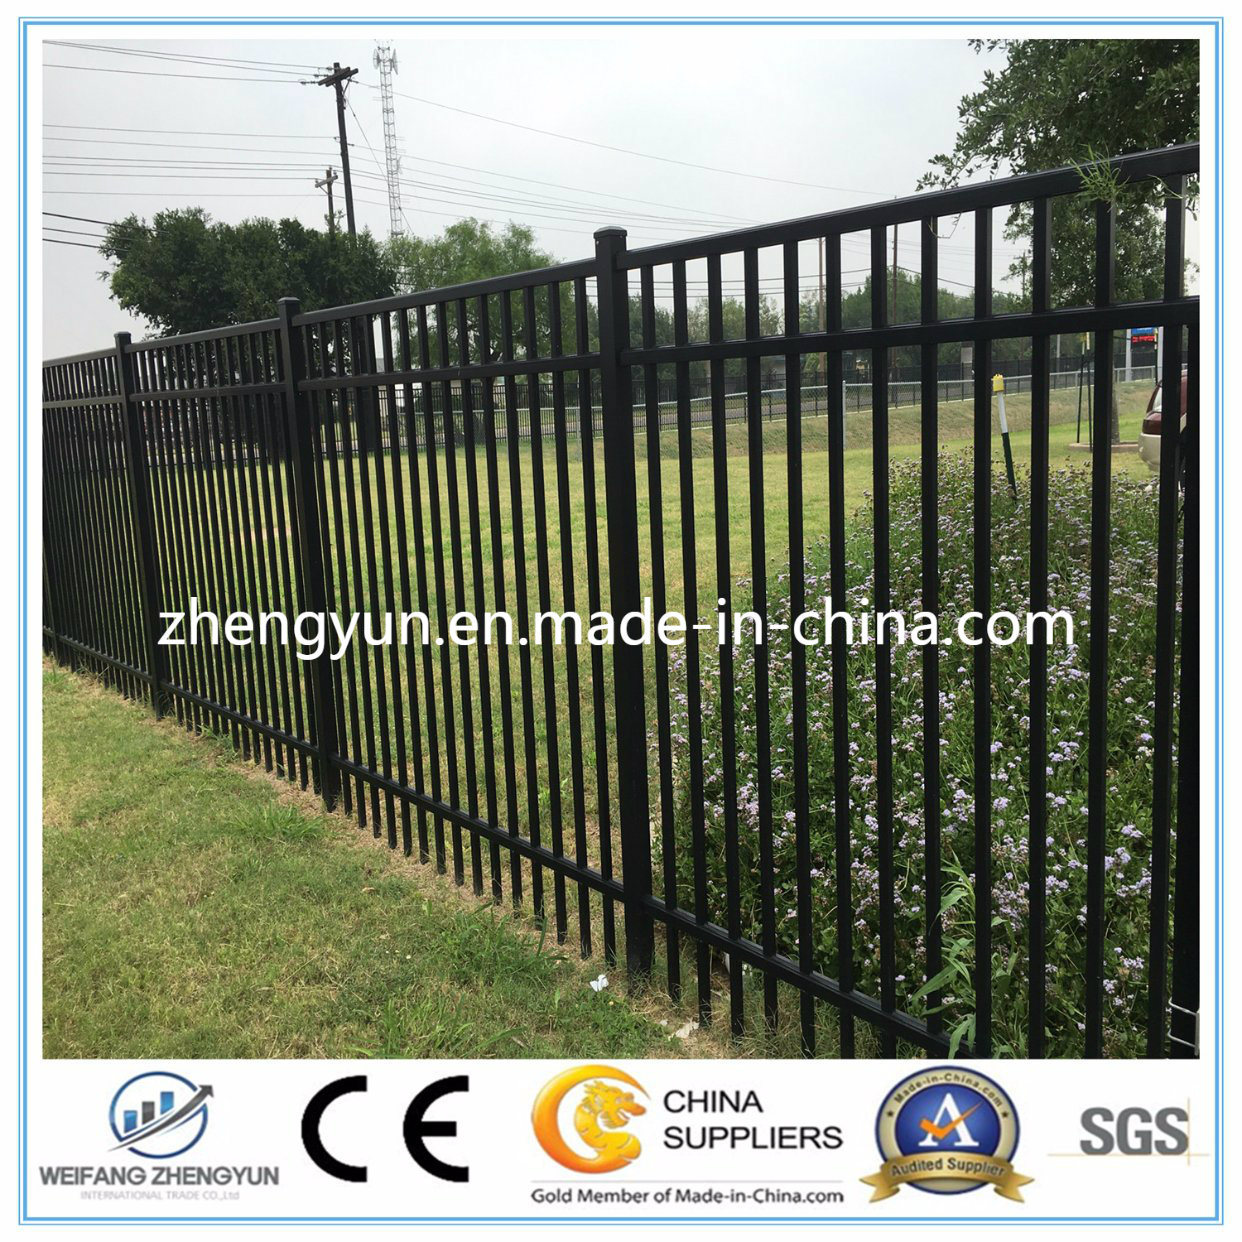 China Powder Coated Outdoor Security Fence/ Steel Fence